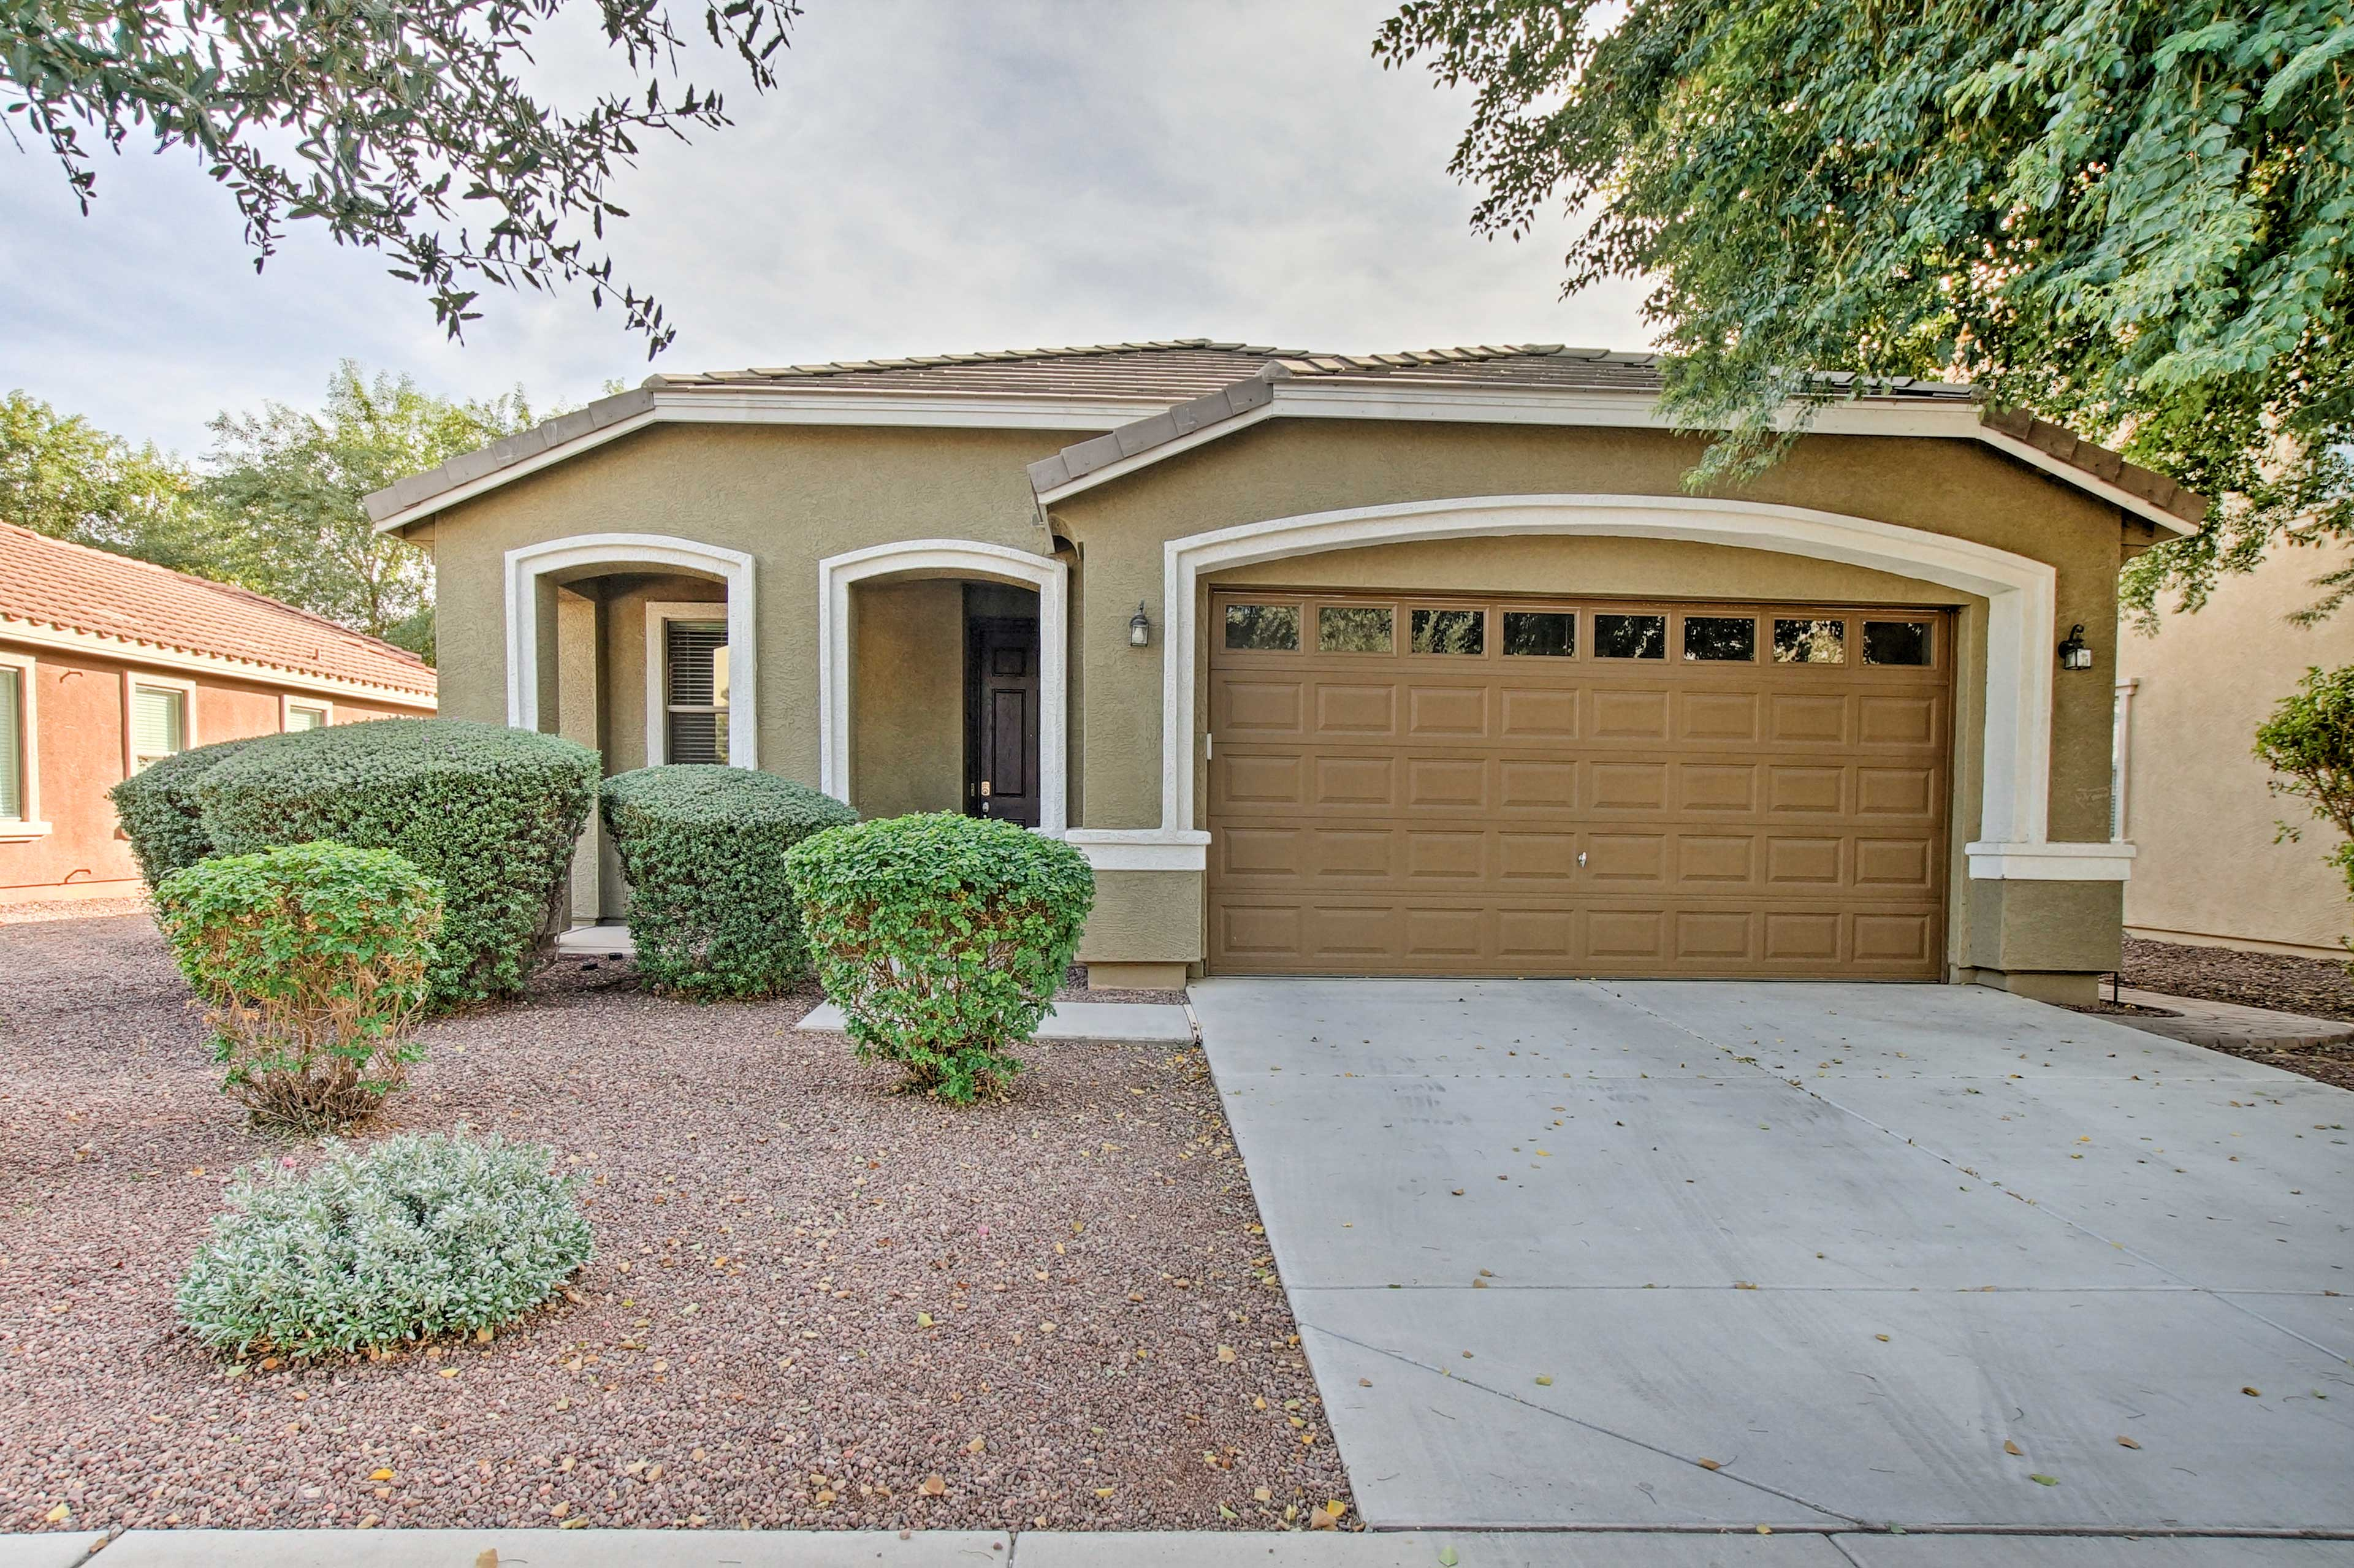 The Gilbert home is located in a quiet, family-friendly neighborhood.